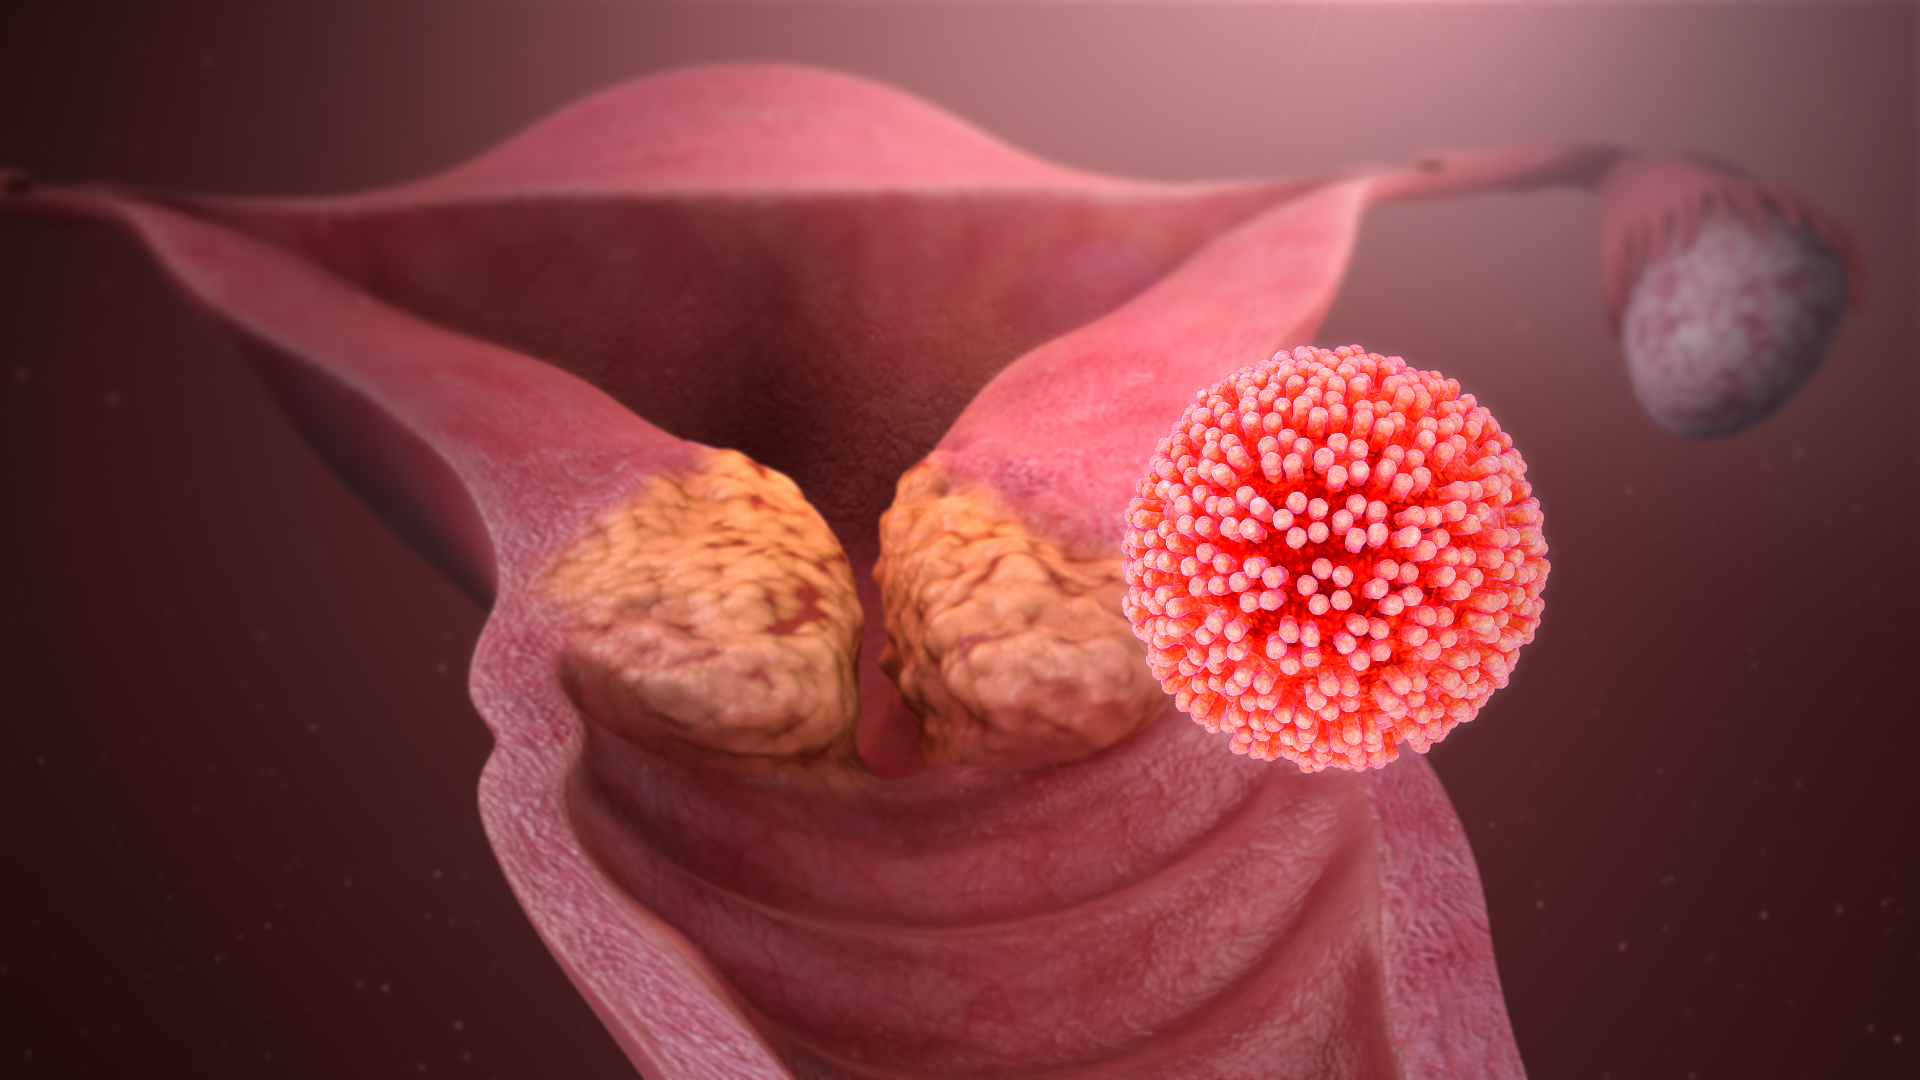 Human Papilloma Virus: The main causes of cervical cancer